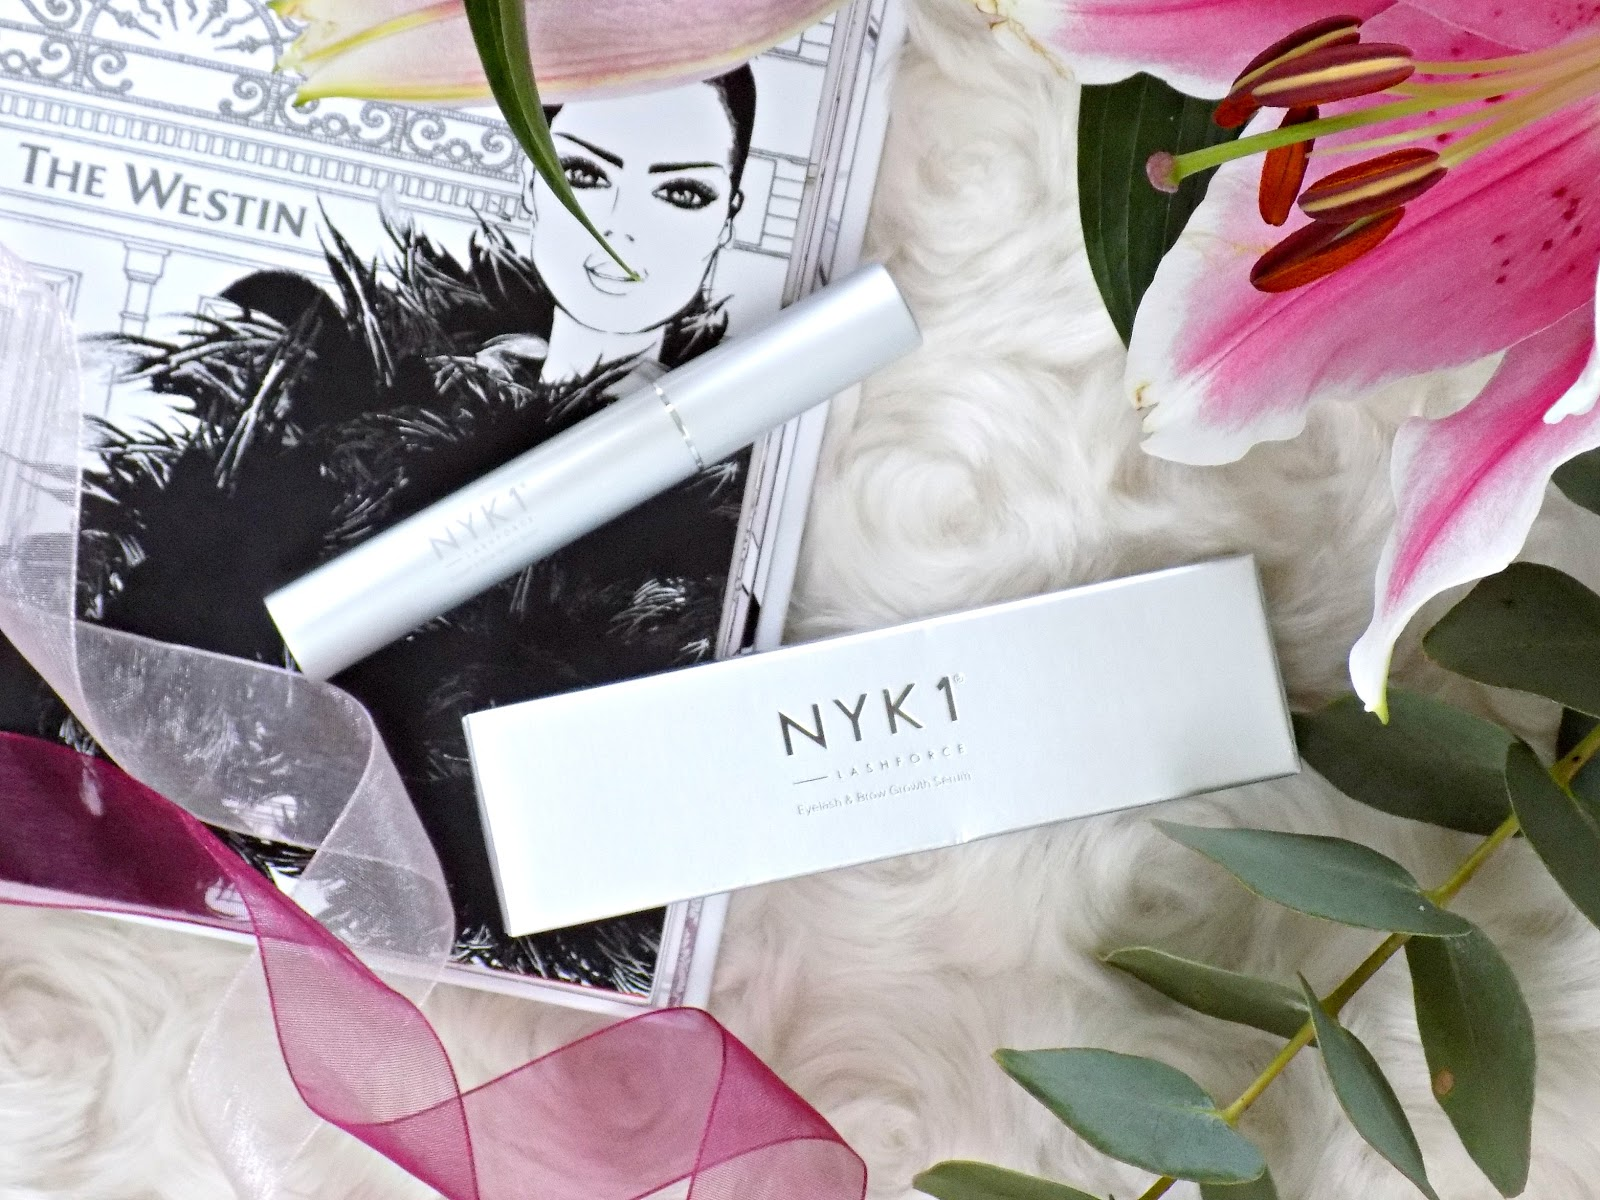 NYK1 Lash force Eyelash Serum